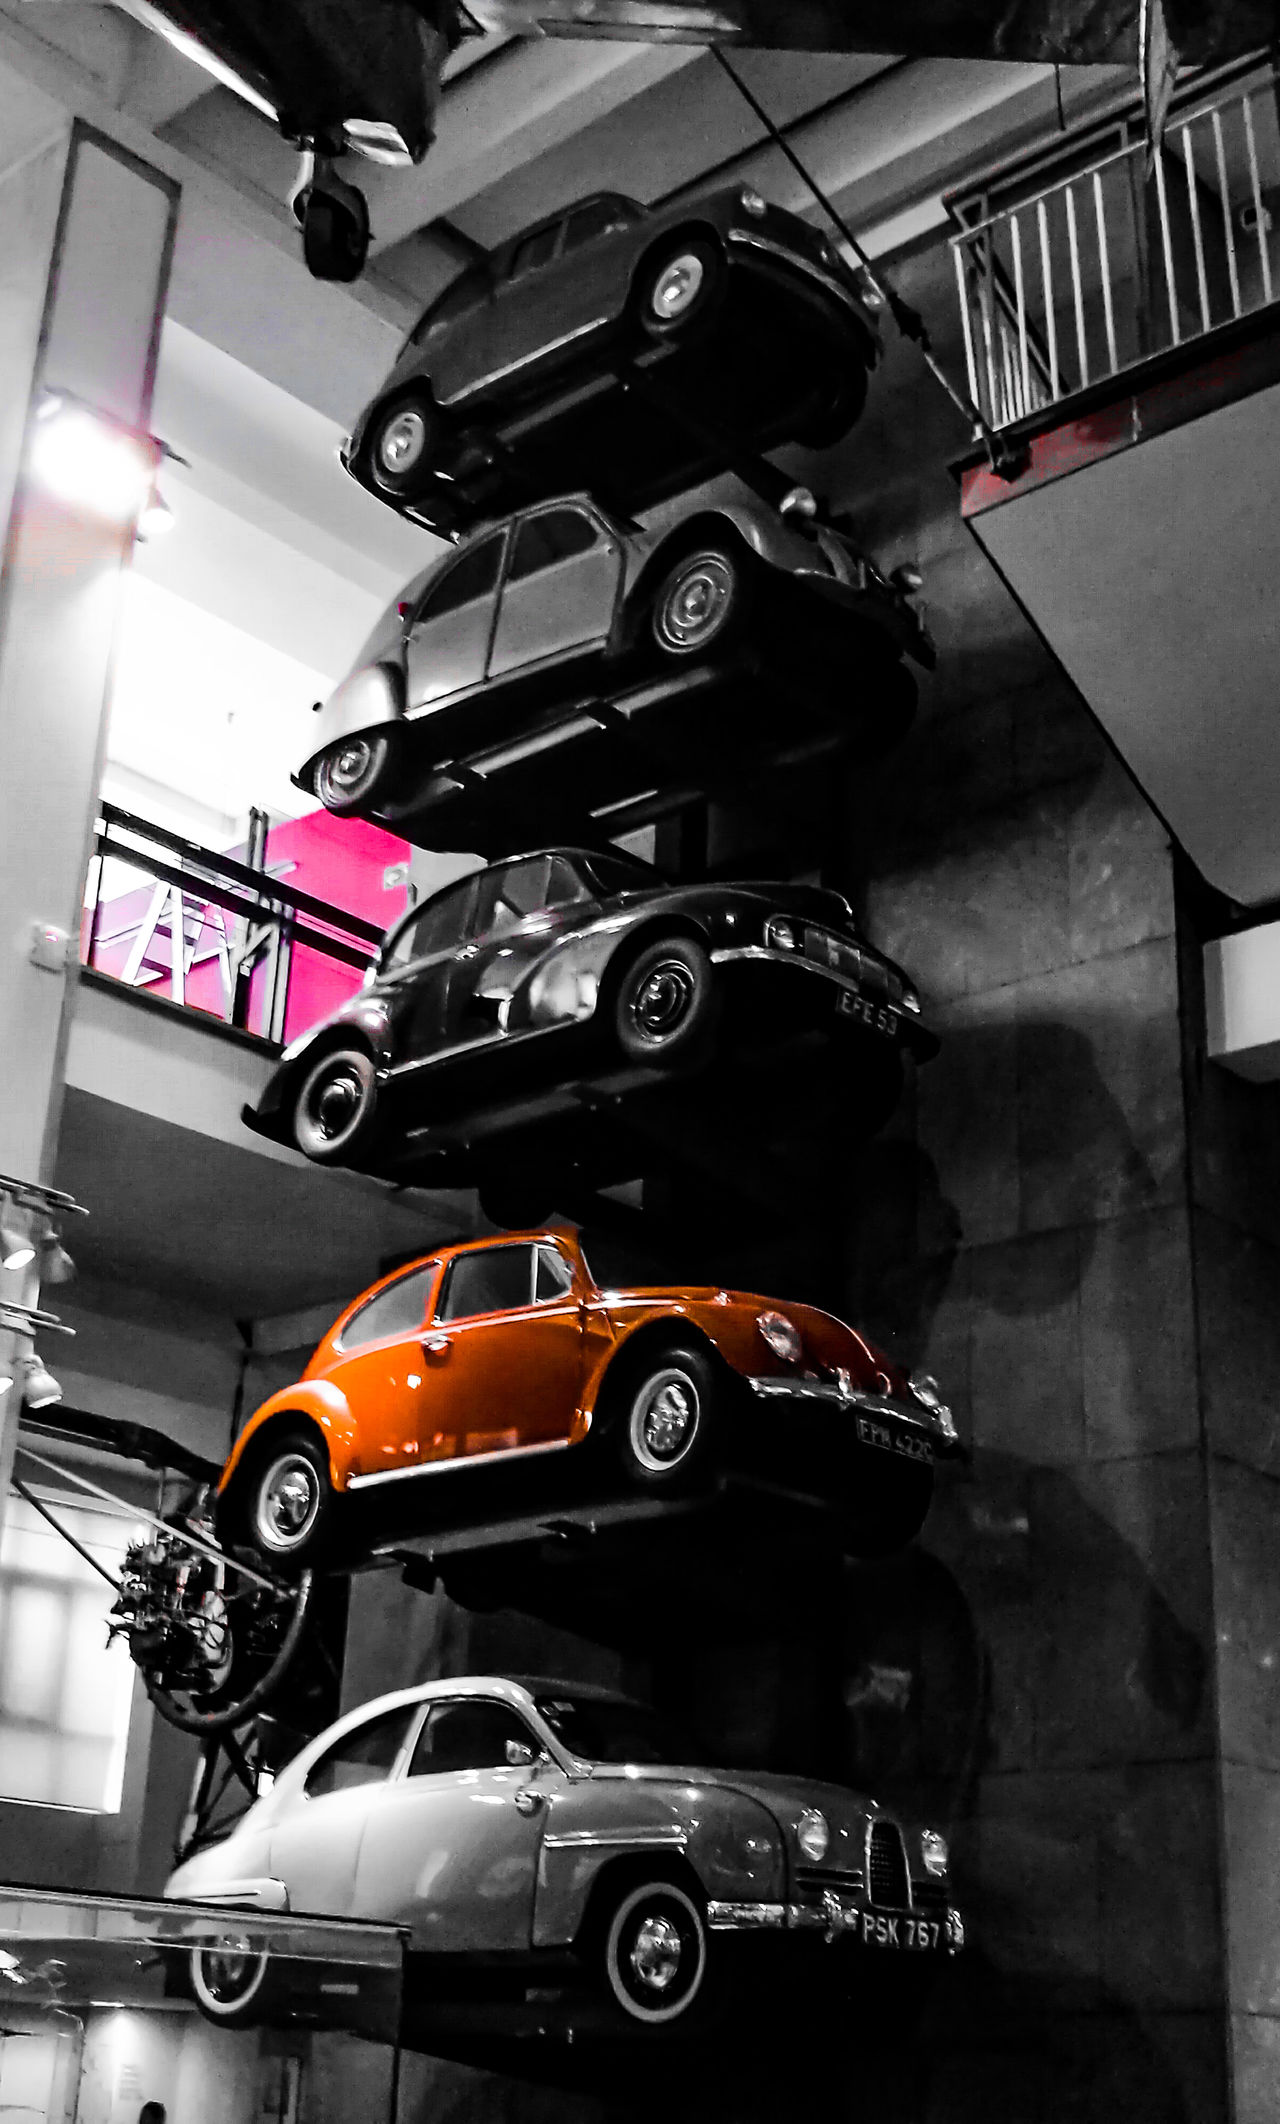 No People Indoors  Car Enjoying The Moment Taking Photos Day Family Time Making Memories<3 London Life EyeEm Gallery Eyeemphotography Eyeem Market Architecture Low Angle View London ScienceMuseum Blackandwhite Photography Canon Eos  February 2017